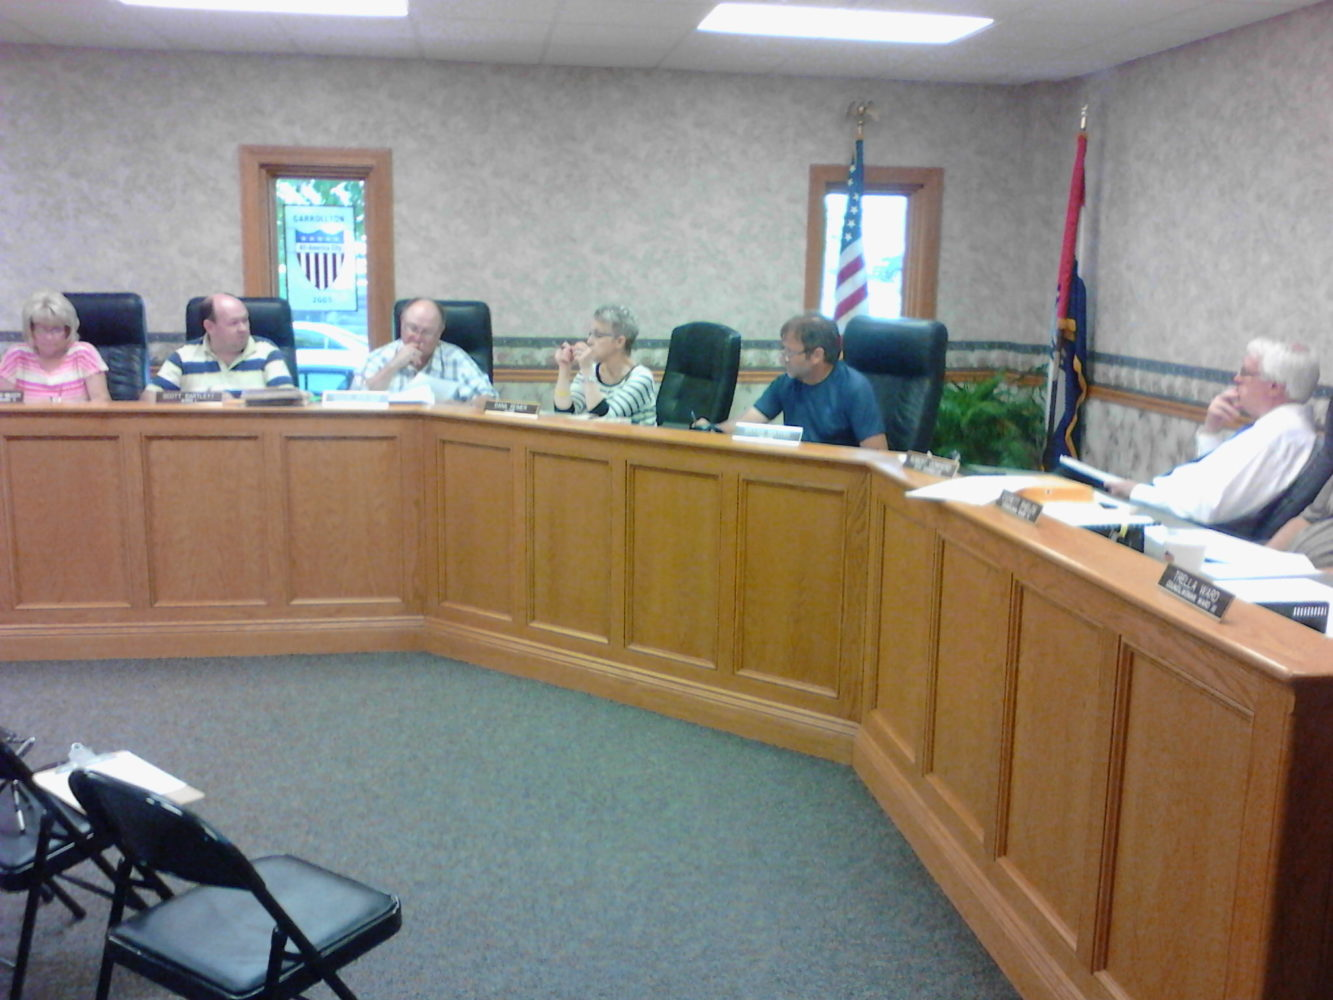 Light Carrollton agenda includes department reports, budget amendments